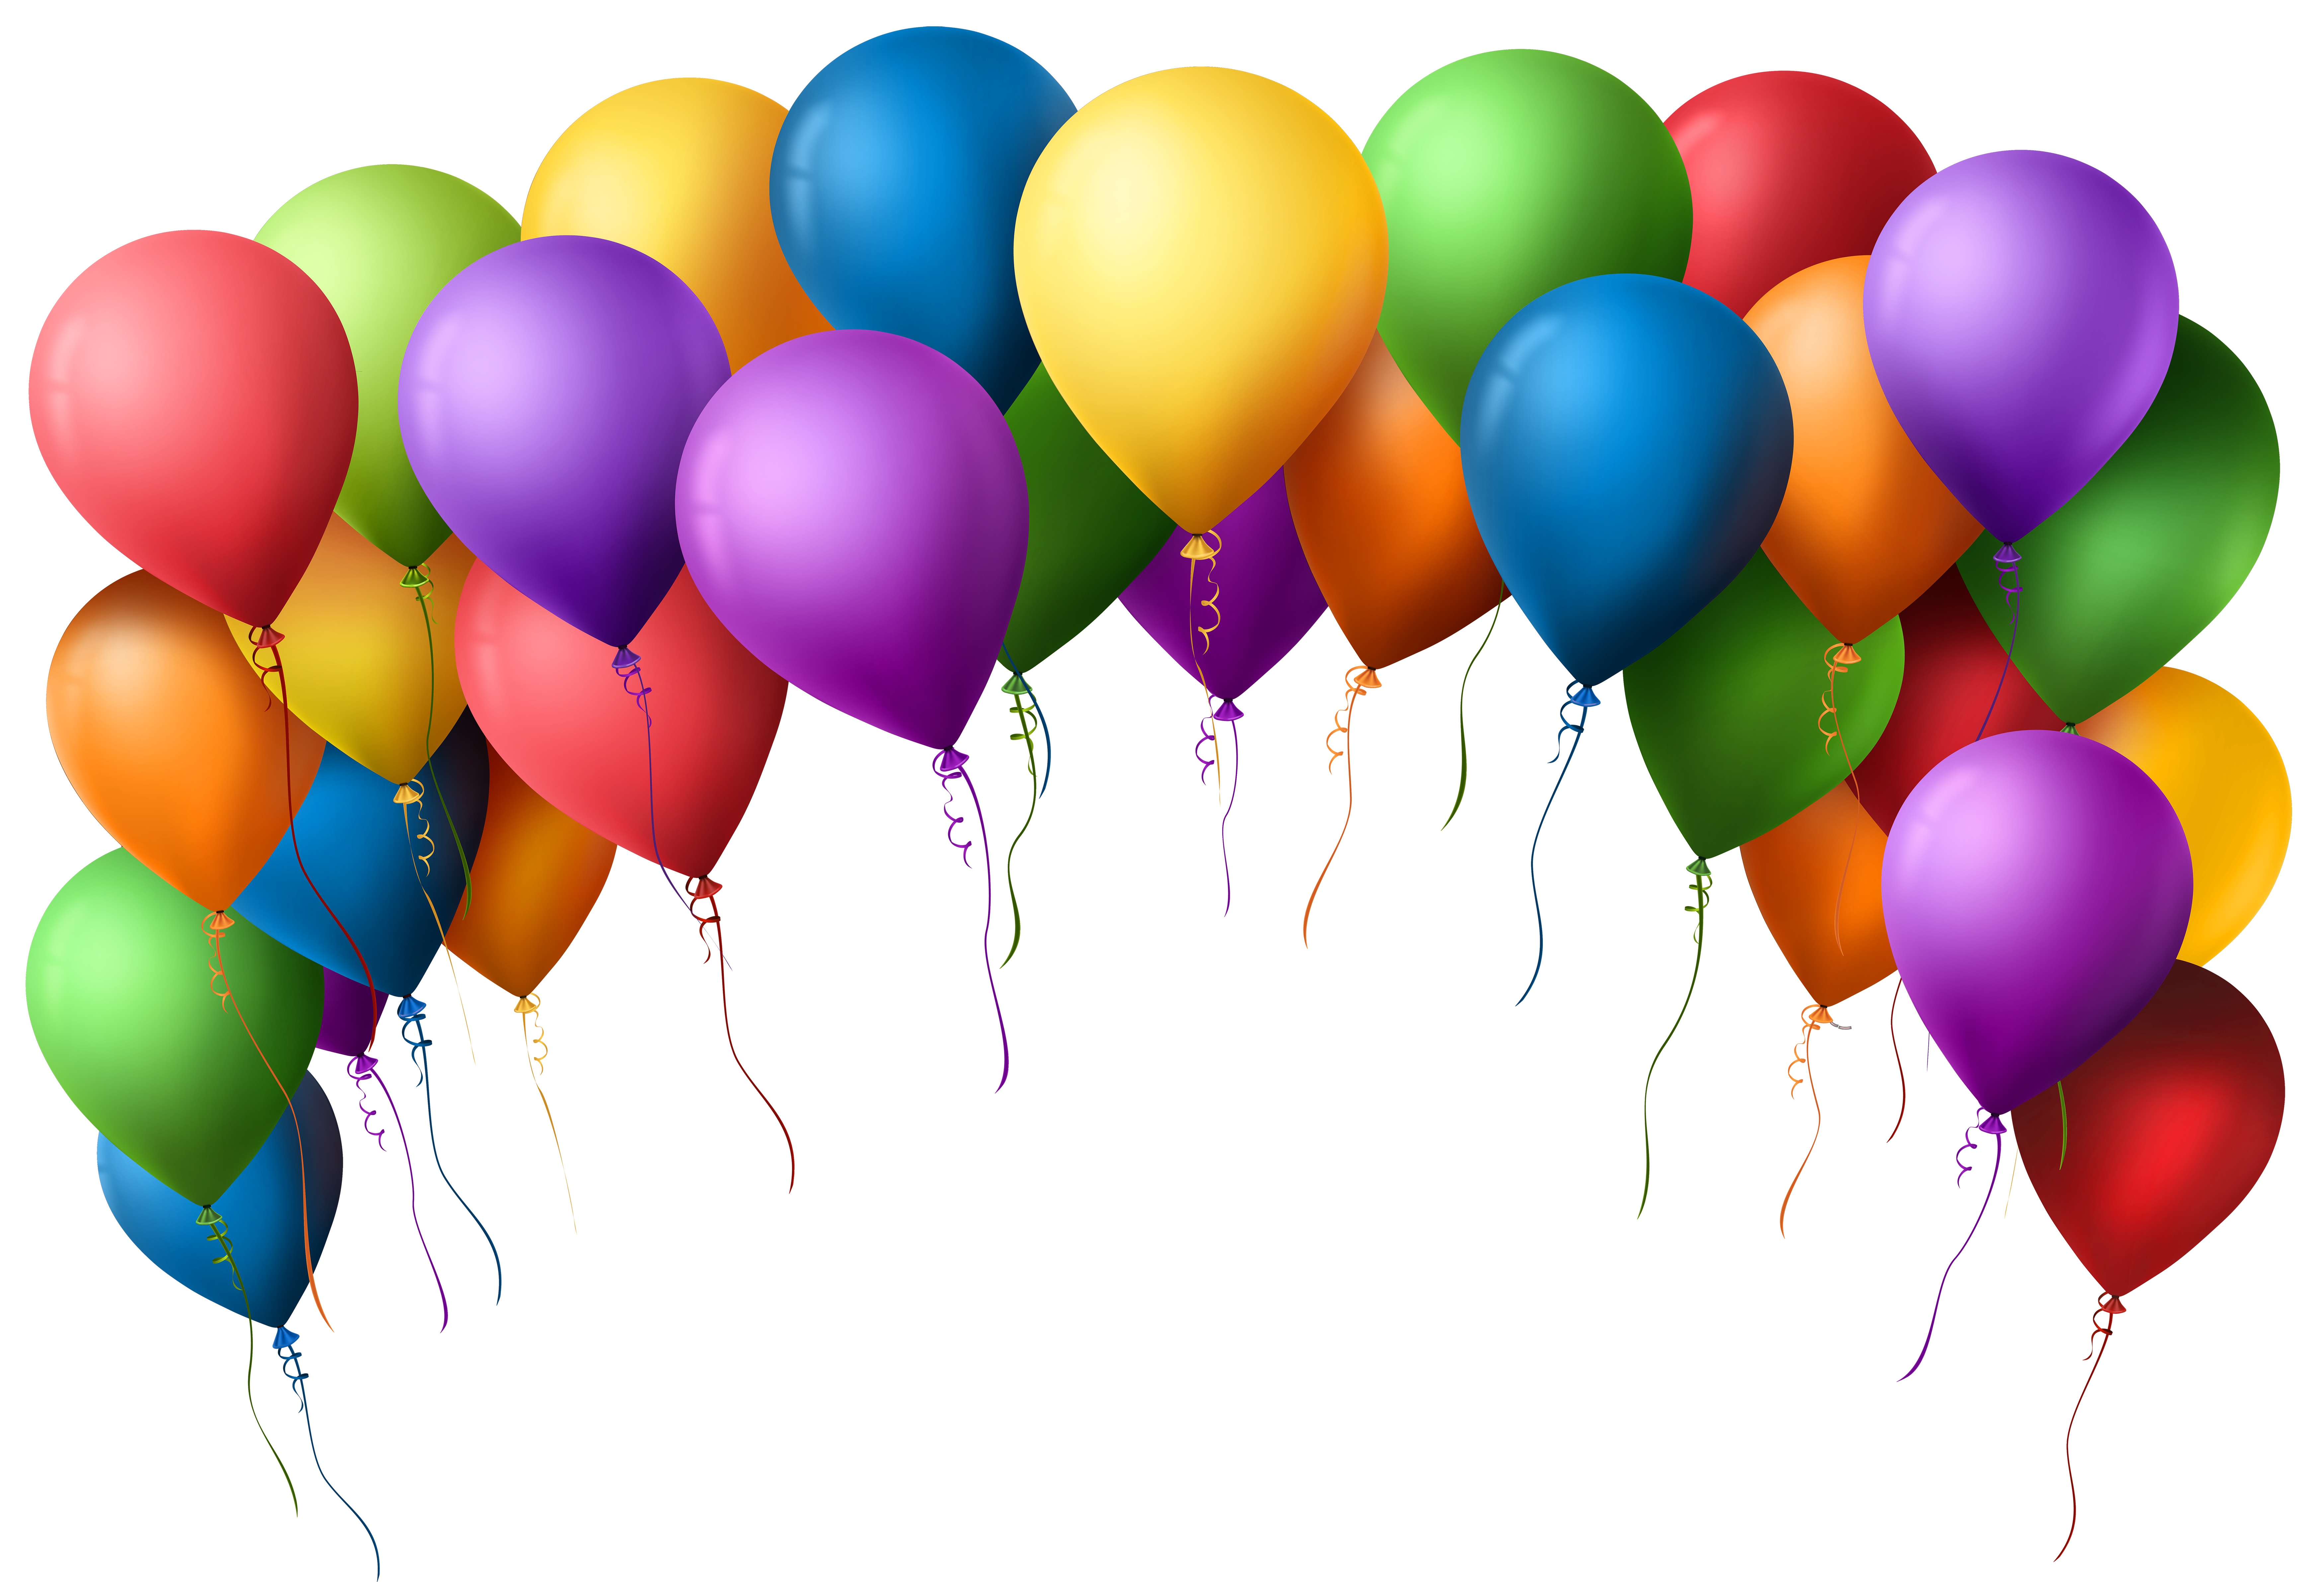 Clipart balloon vendor. Arch transparent png clip